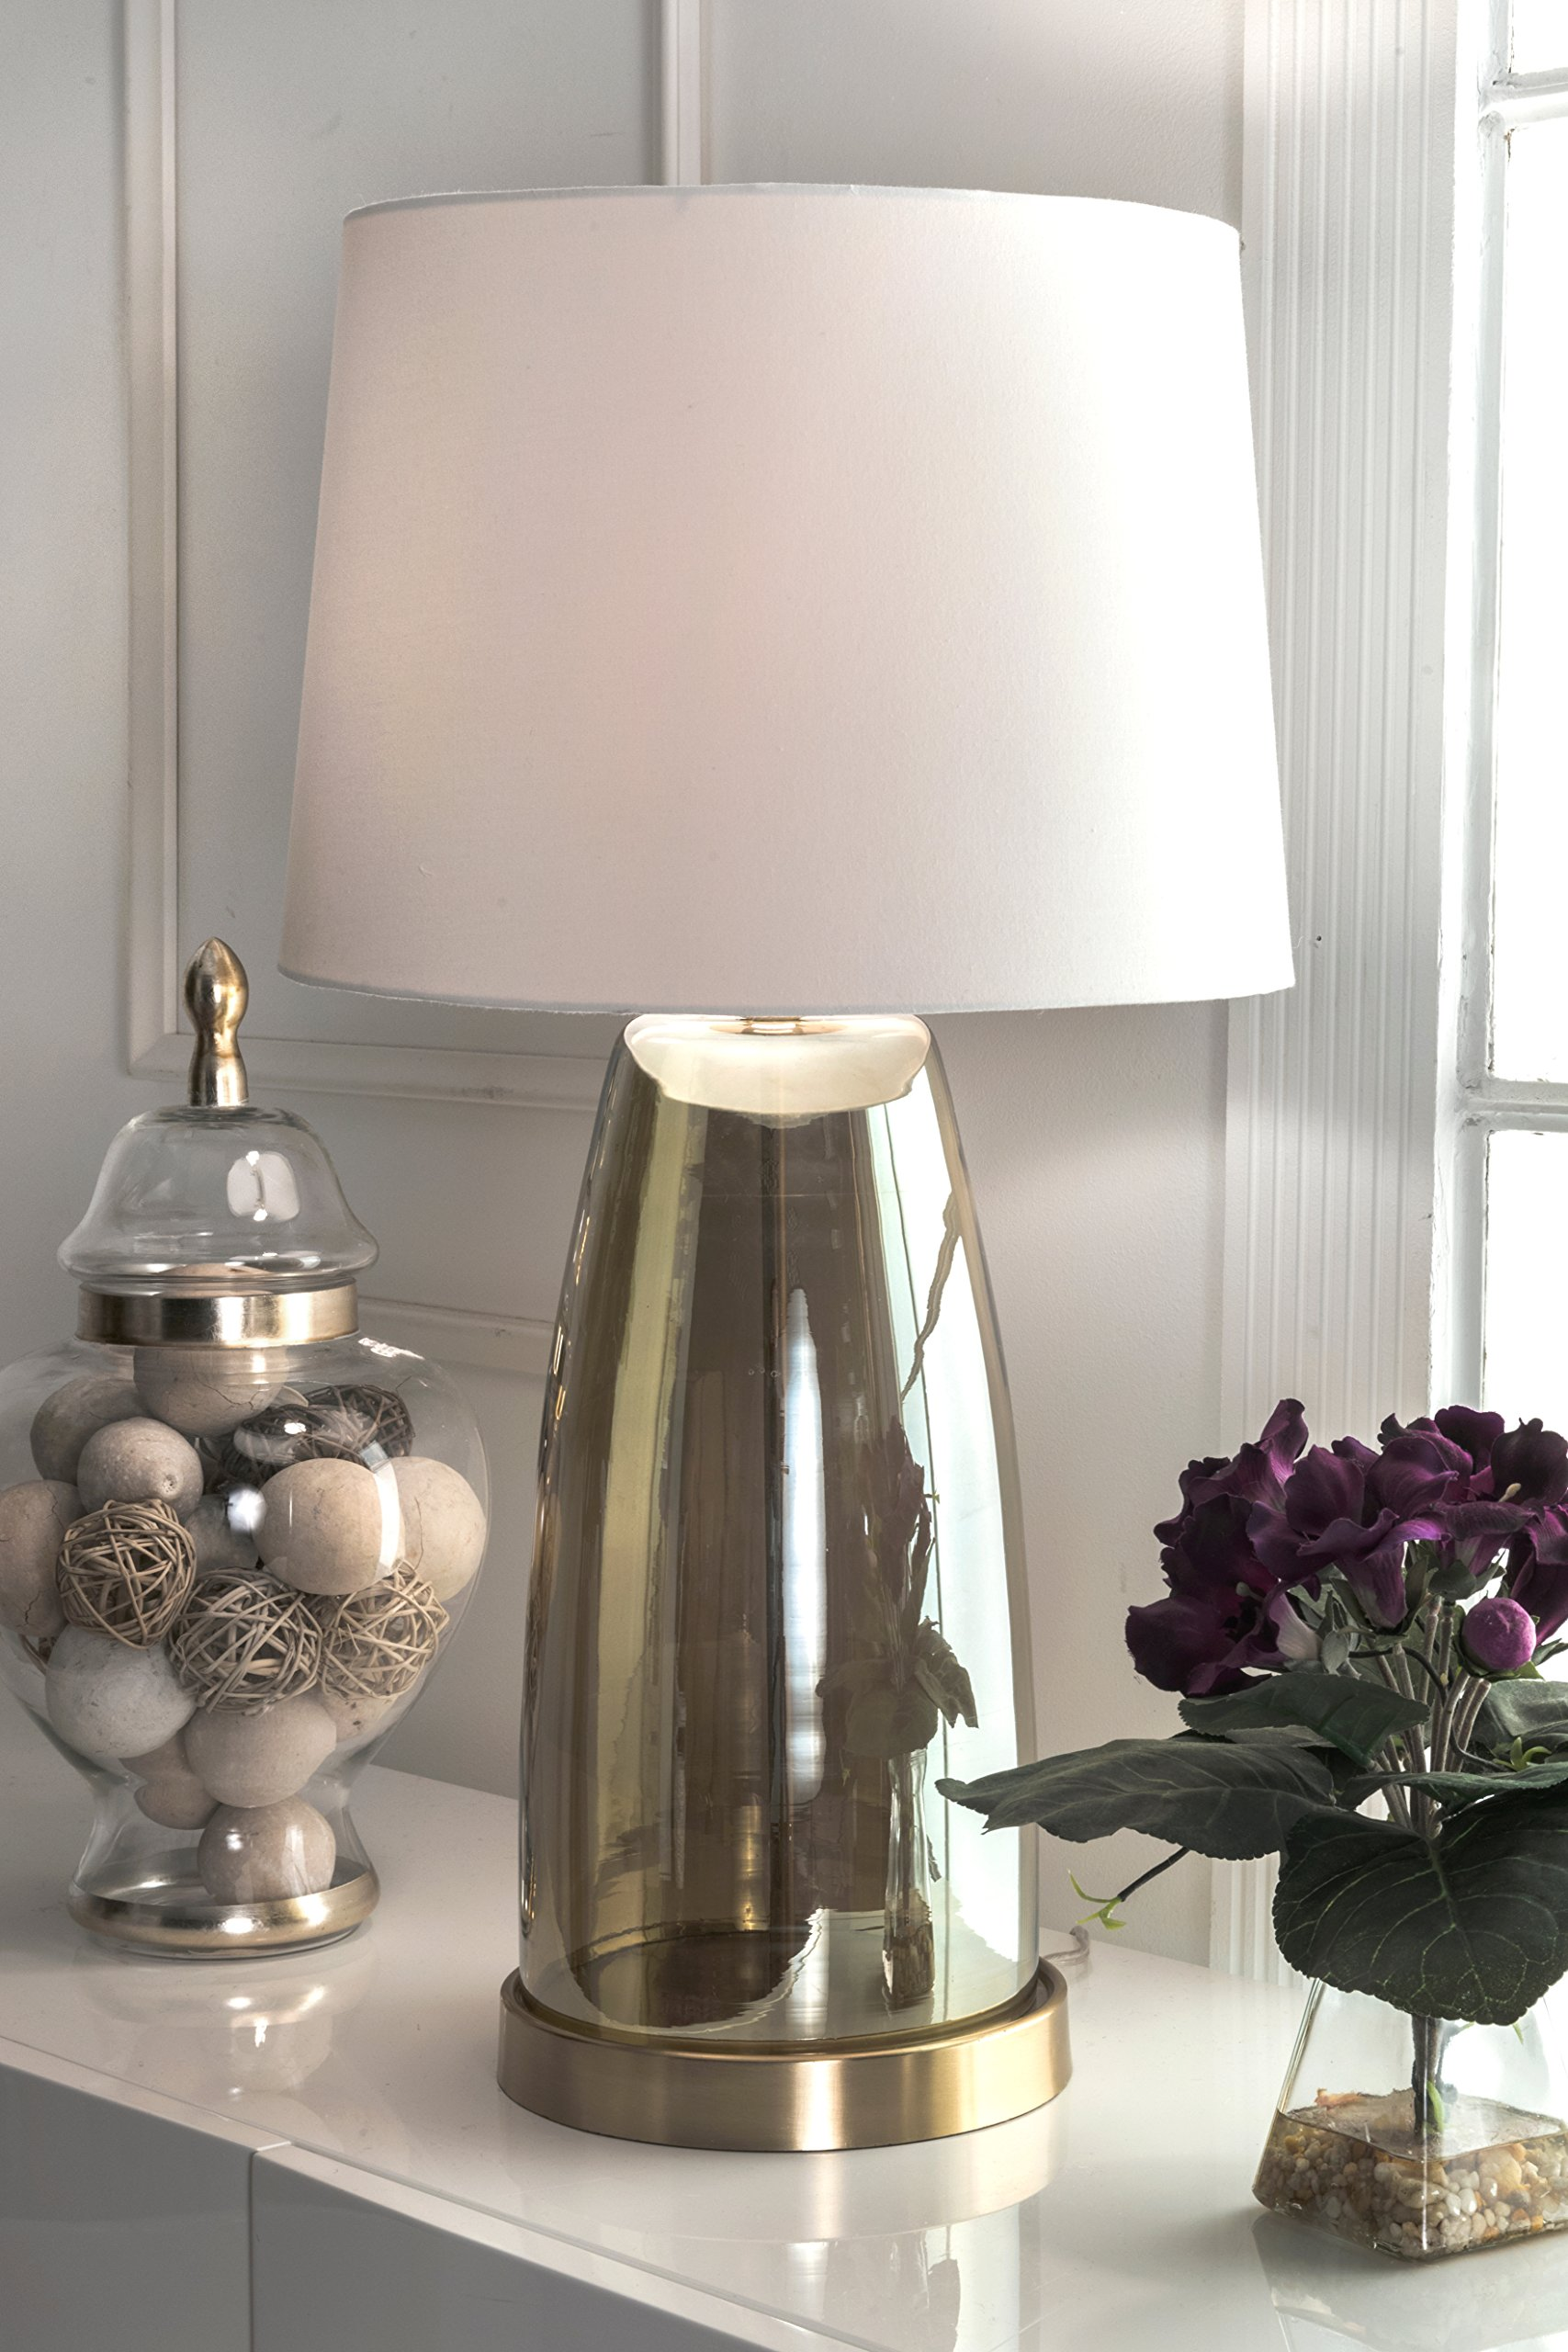 Watch Hill 28-inch Vivian Glass Cotton Shade Table Lamp